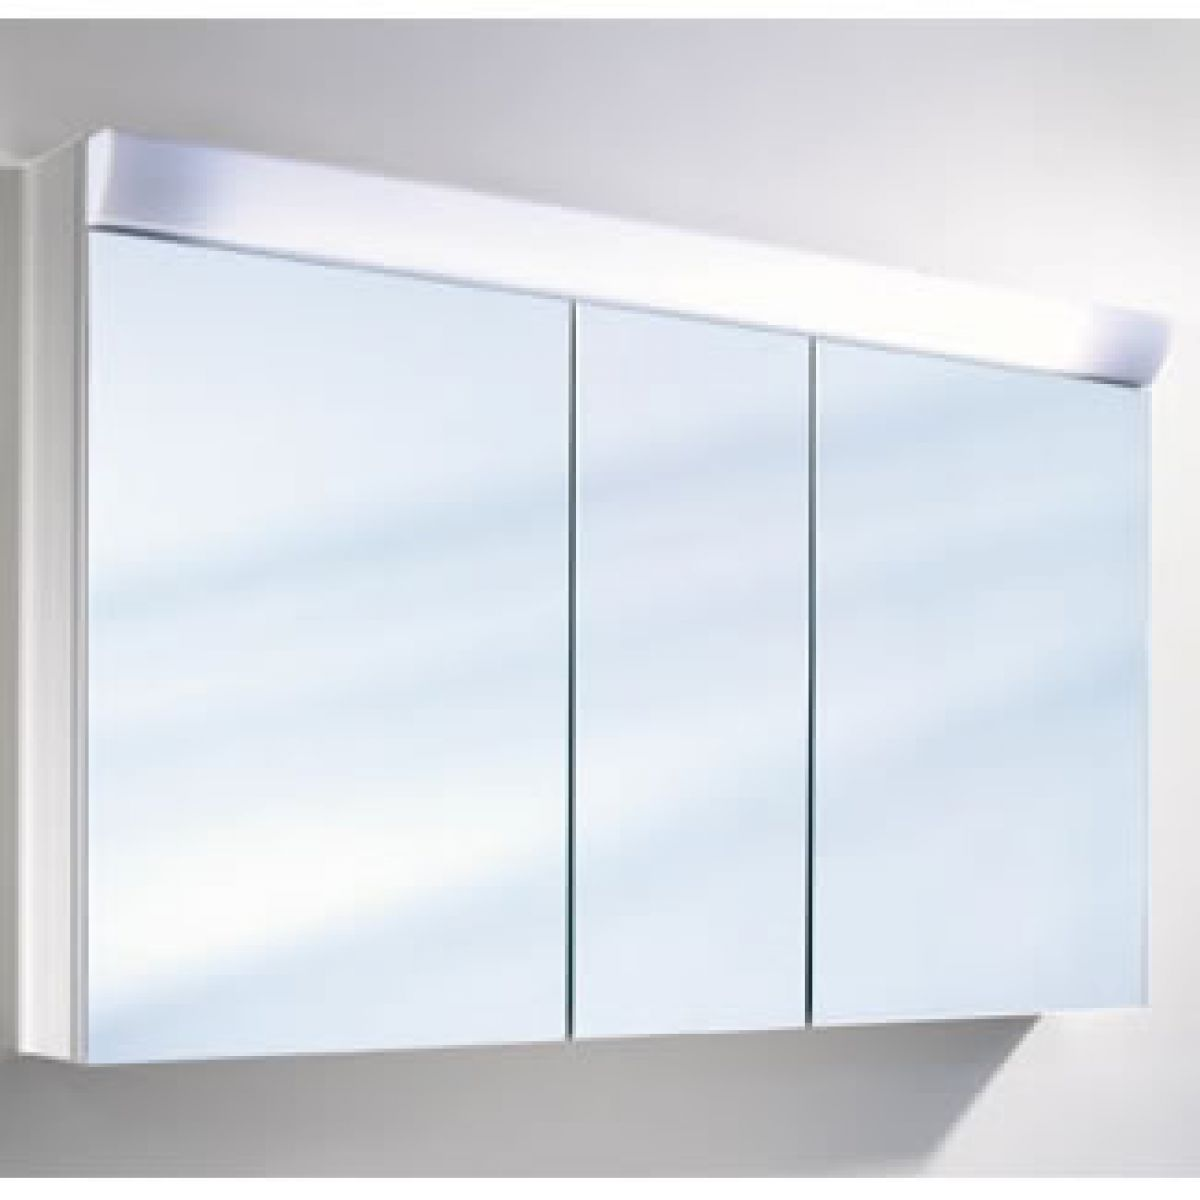 Schneider Wangaline 3 Door Mirror Cabinet : UK Bathrooms